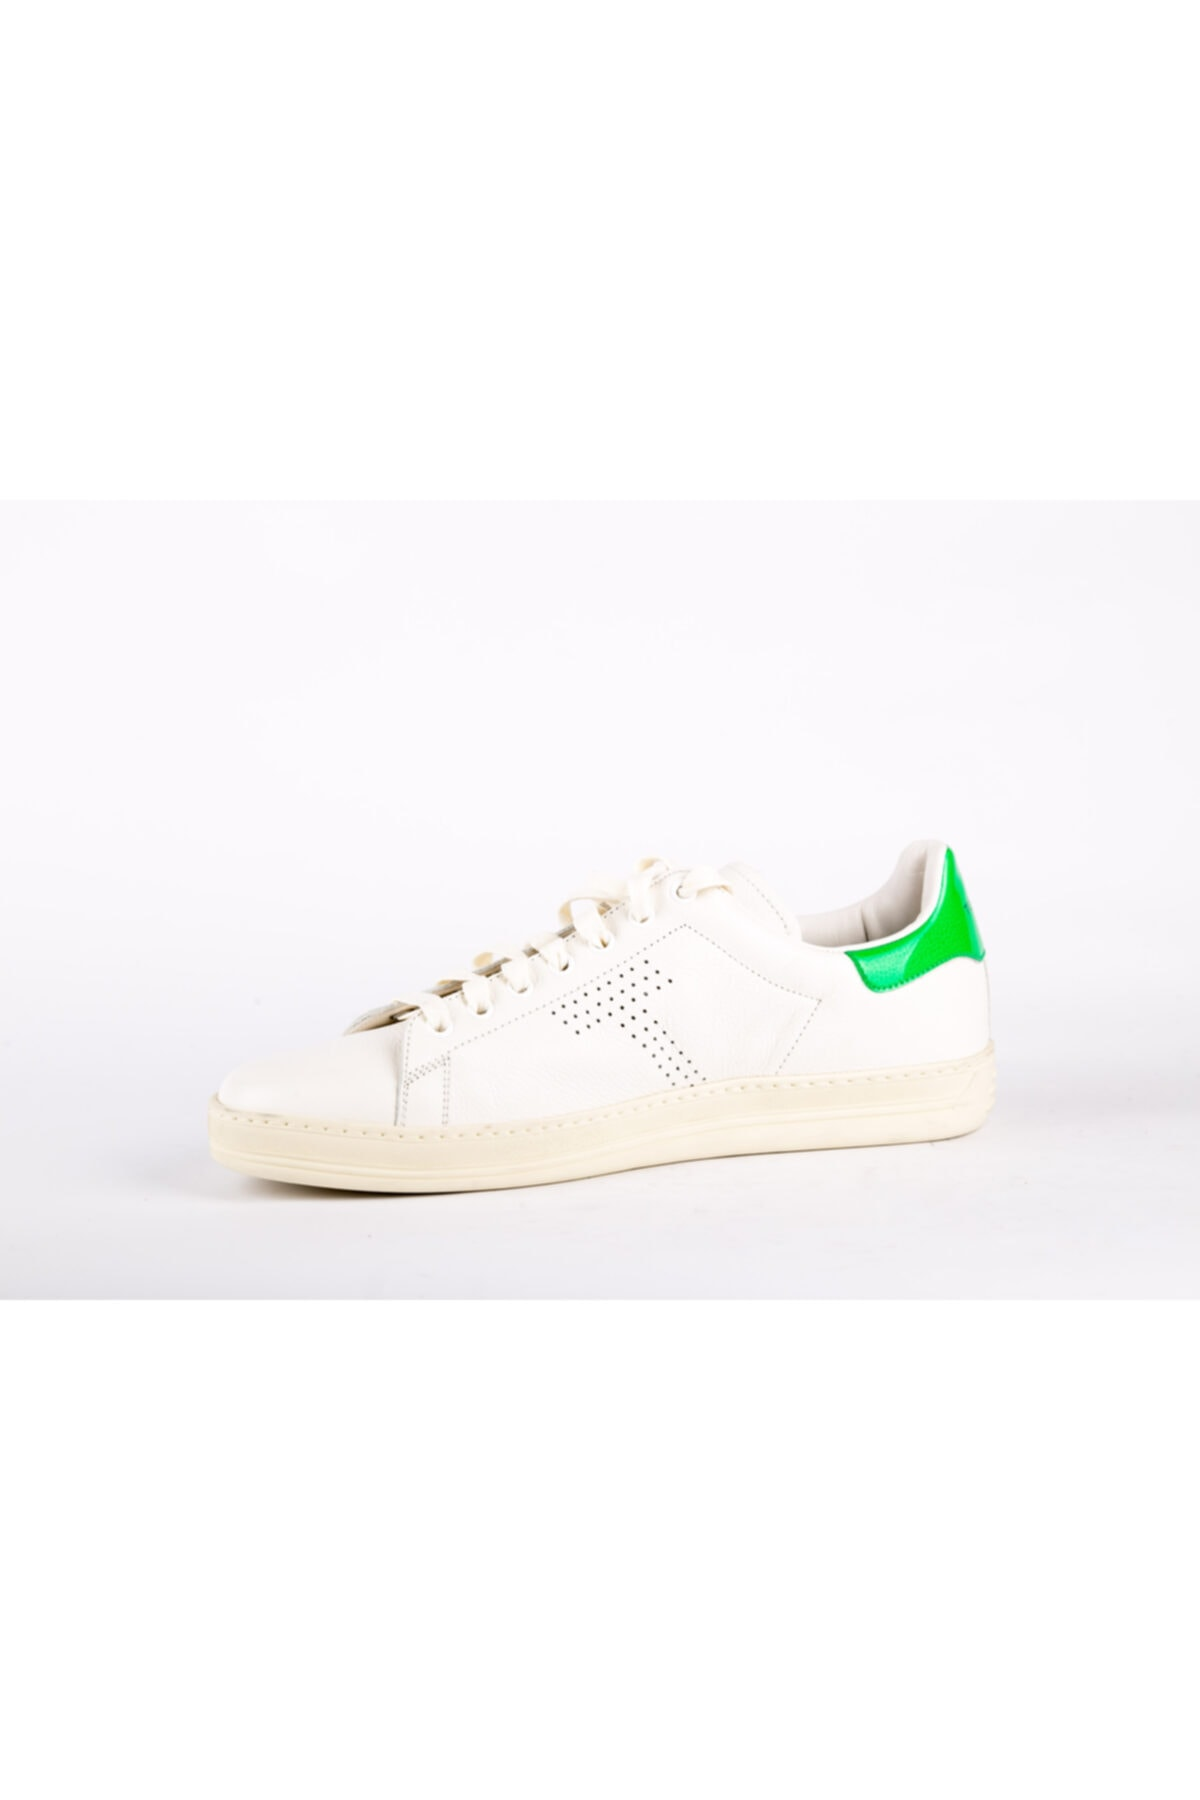 Tom Ford Erkek Sneakers 1